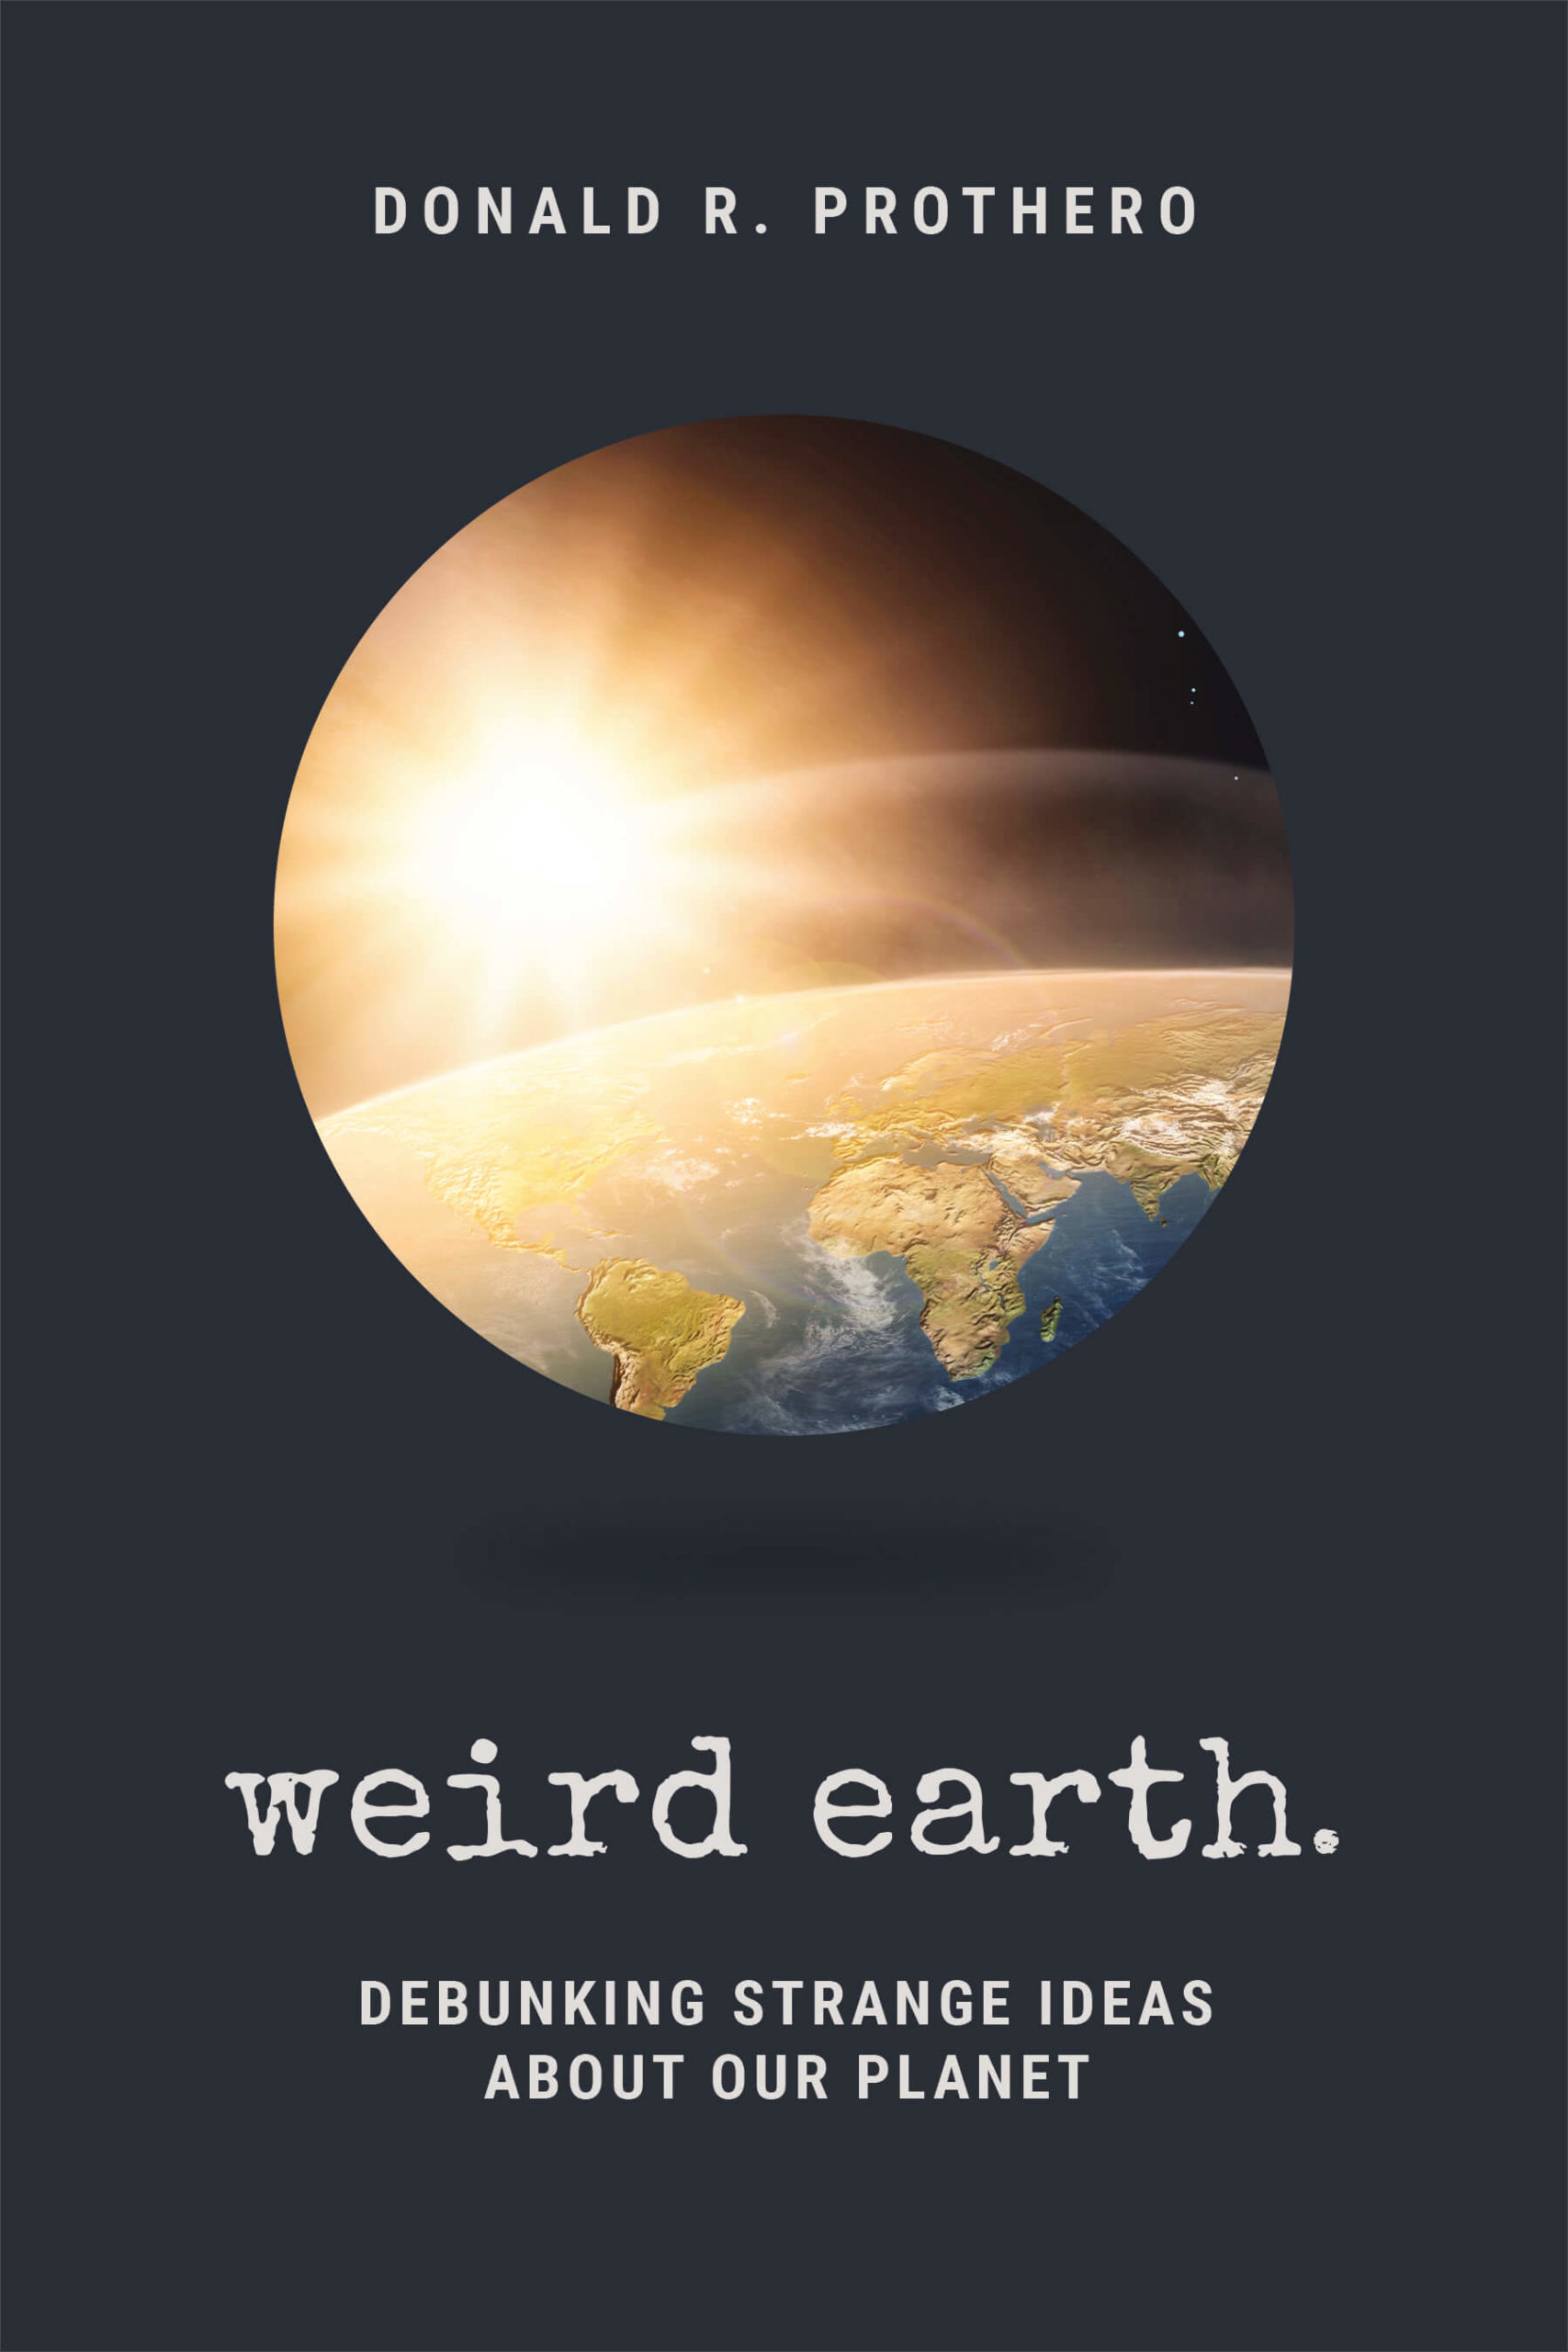 Weird Earth Debunking Strange Ideas about Our Planet by Donald R. Prothero